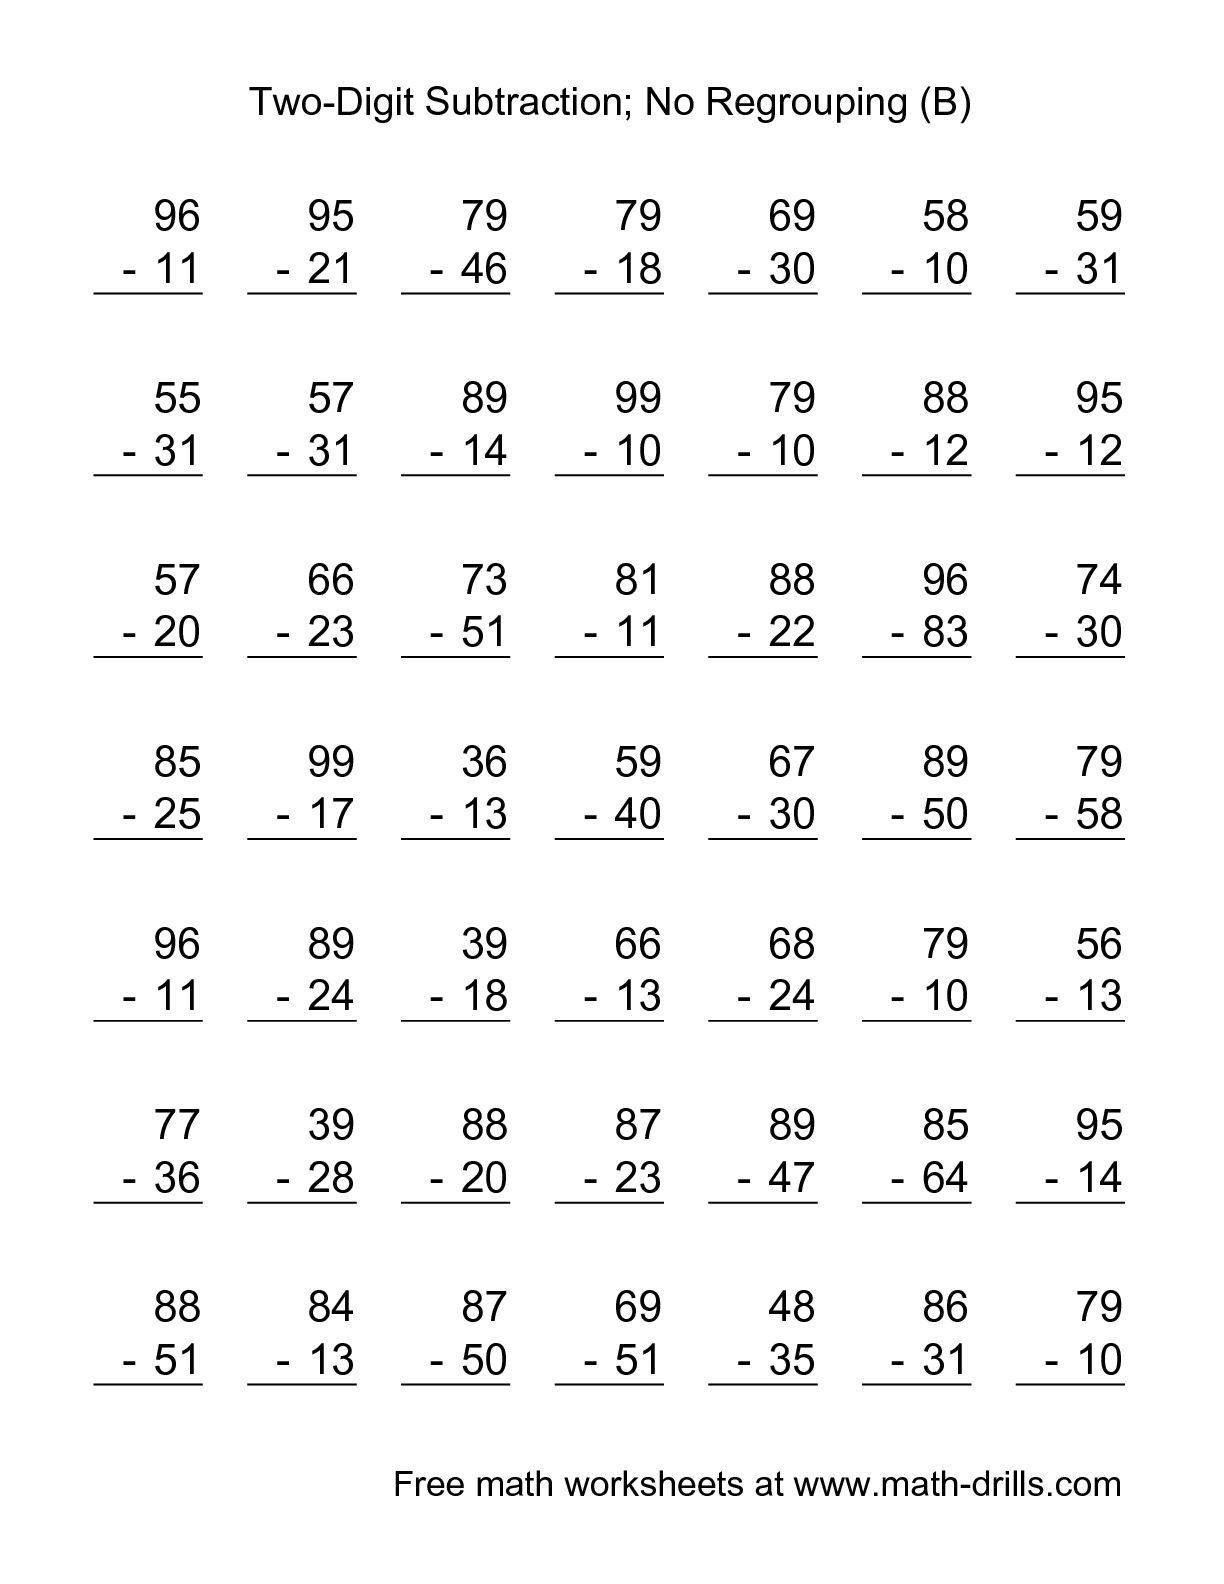 The Two Digit Subtraction With No Regrouping 49 Questions B Math Worksheet From The